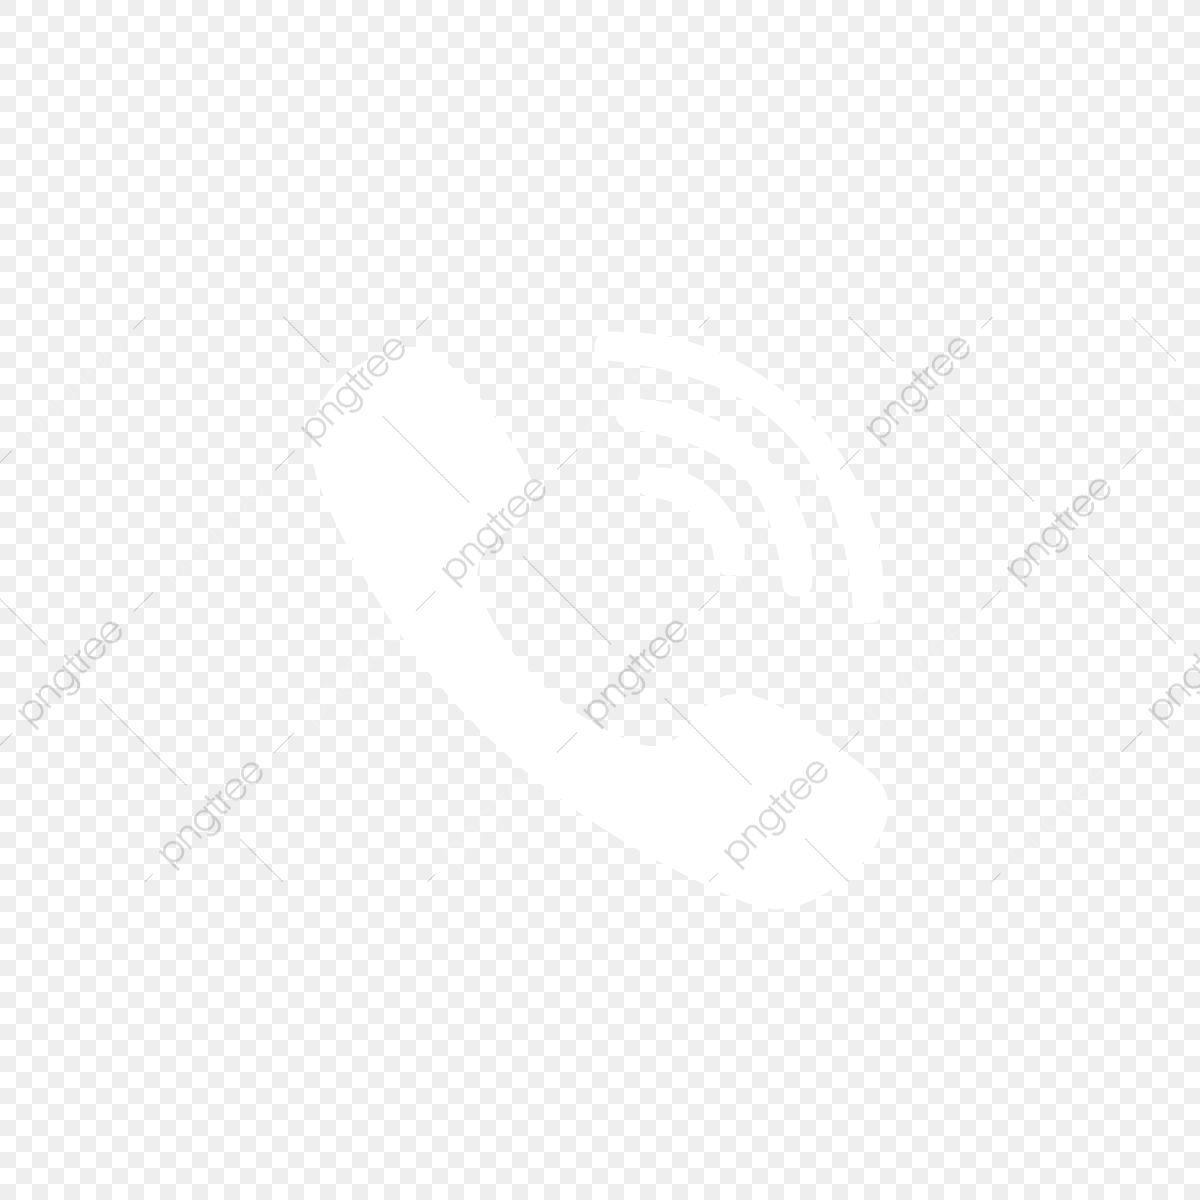 White Call Icon Png Phone Icon Call Design Elemet Png And Vector With Transparent Background For Free Download Call Logo Phone Logo Phone Icon